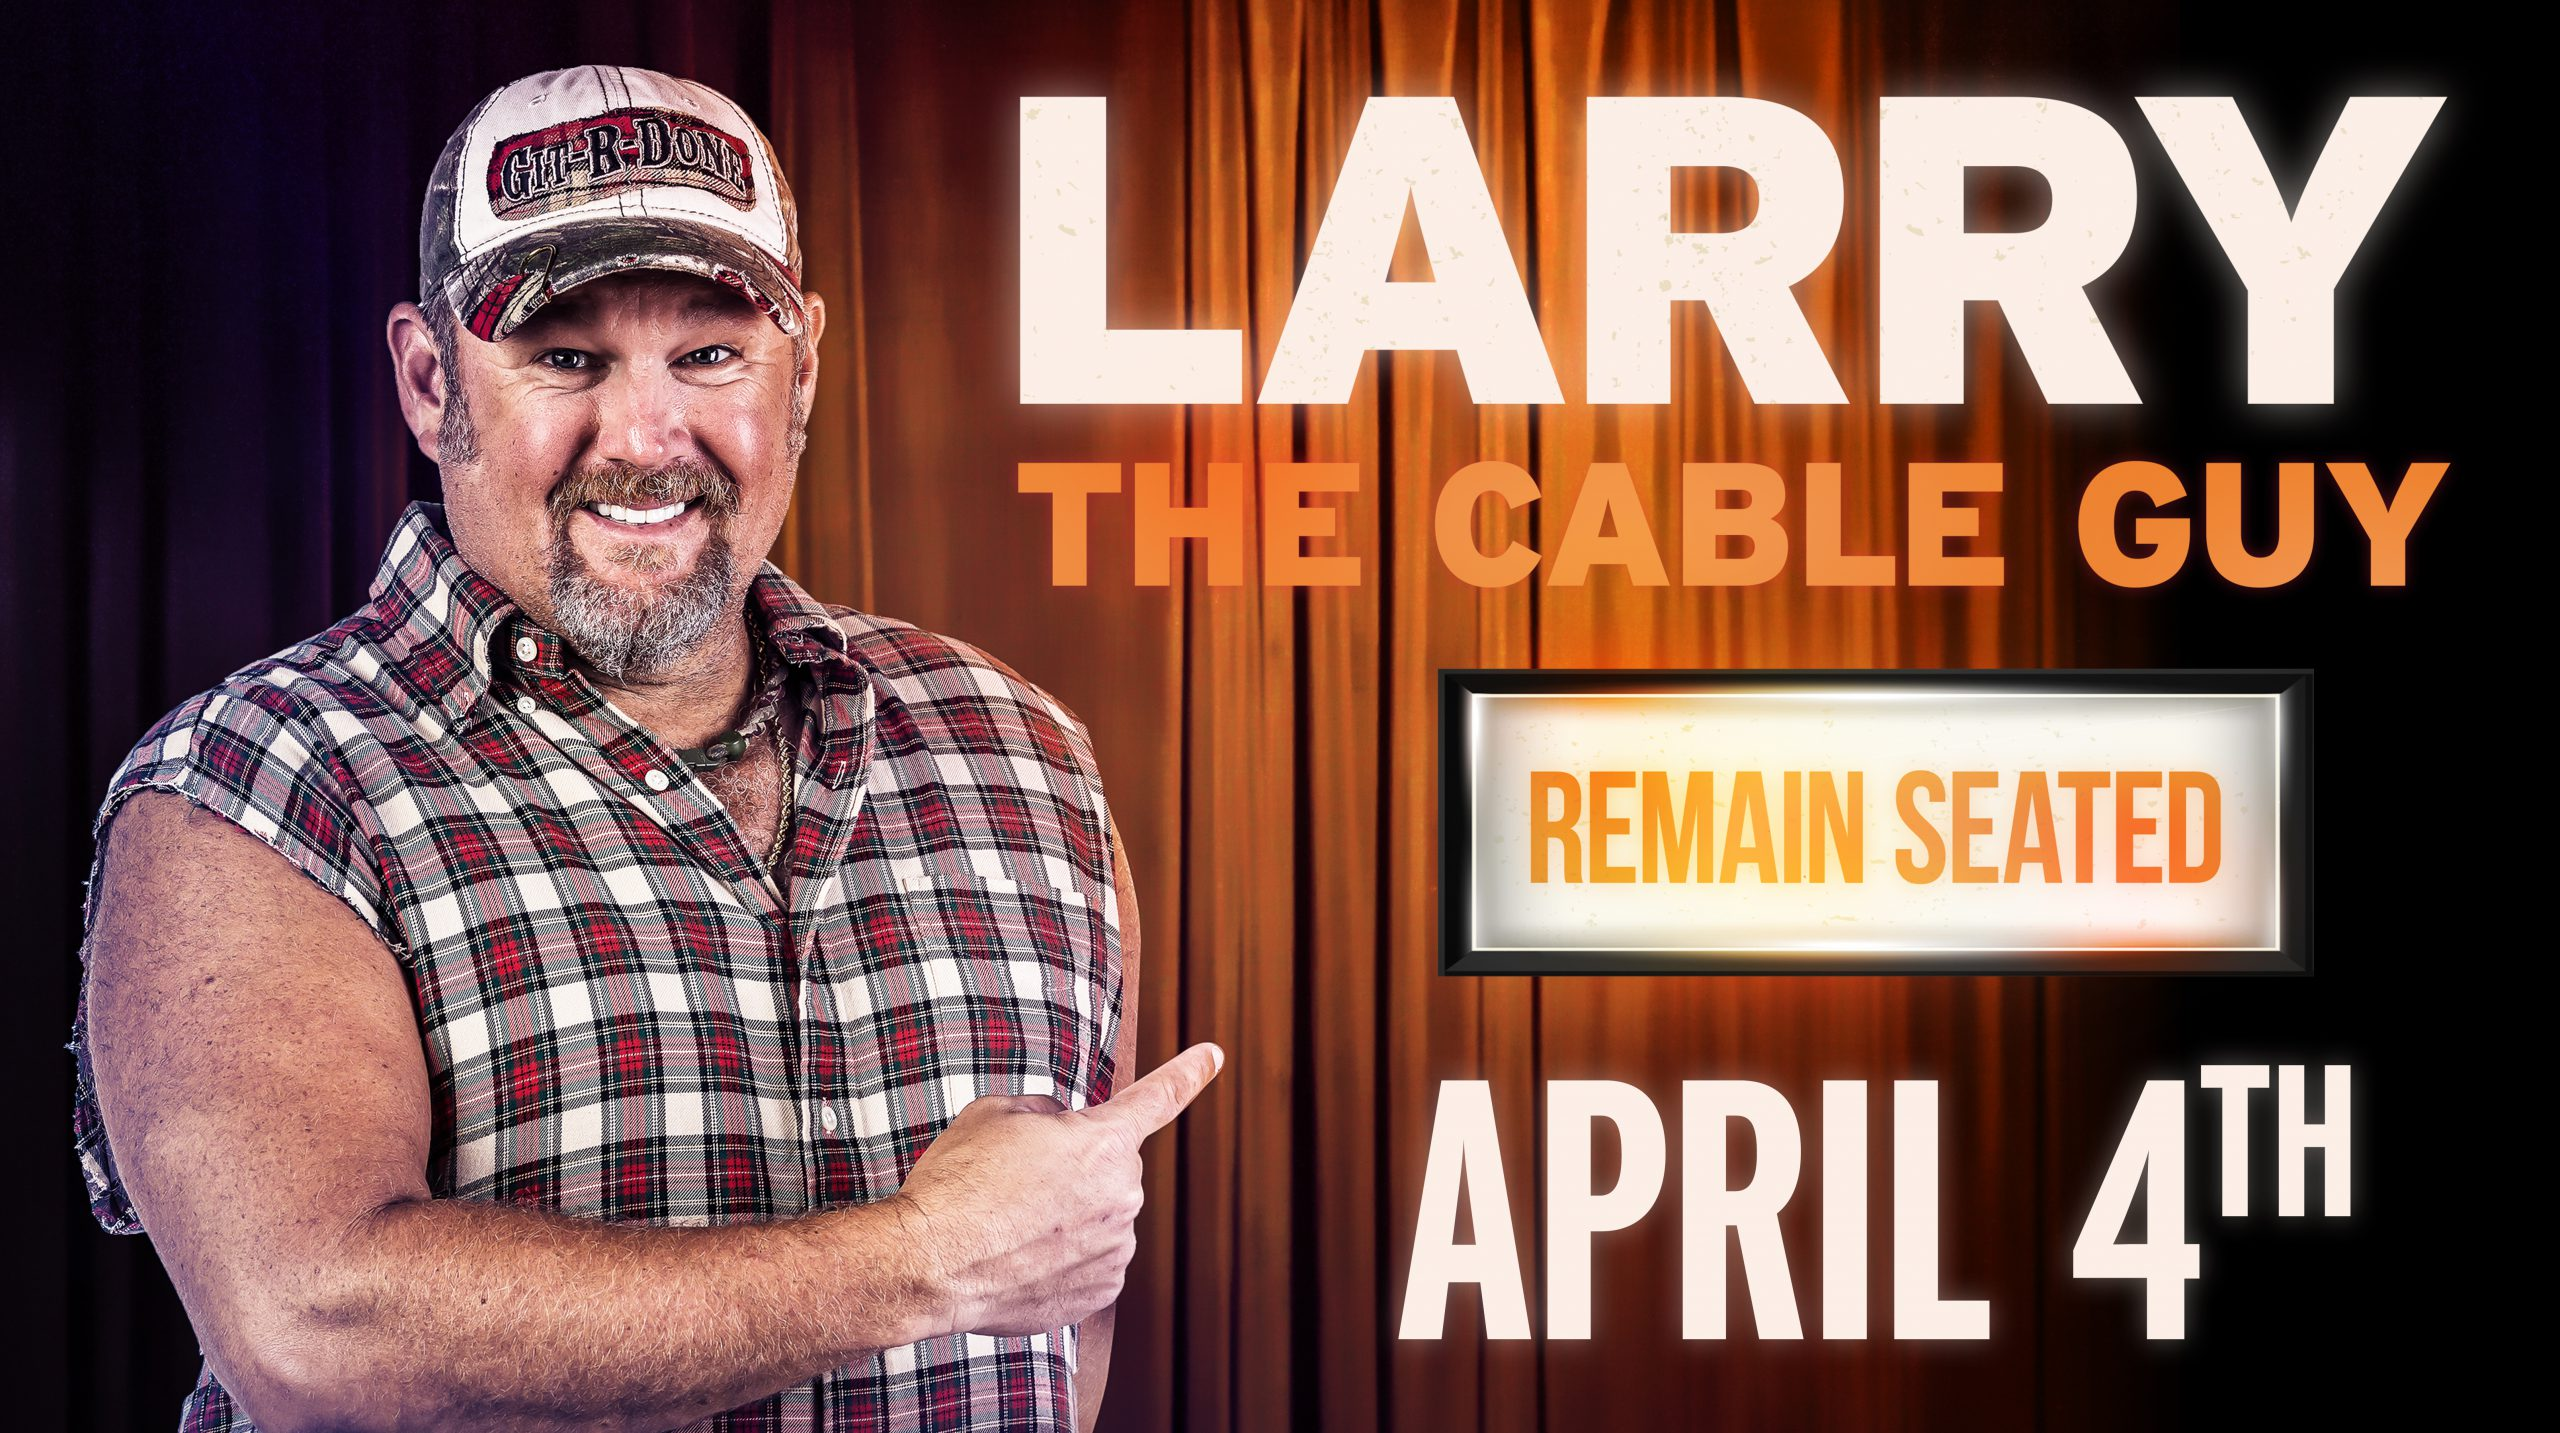 Larry the Cable Guy - APRIL 4TH AT FIRELAKE ARENA